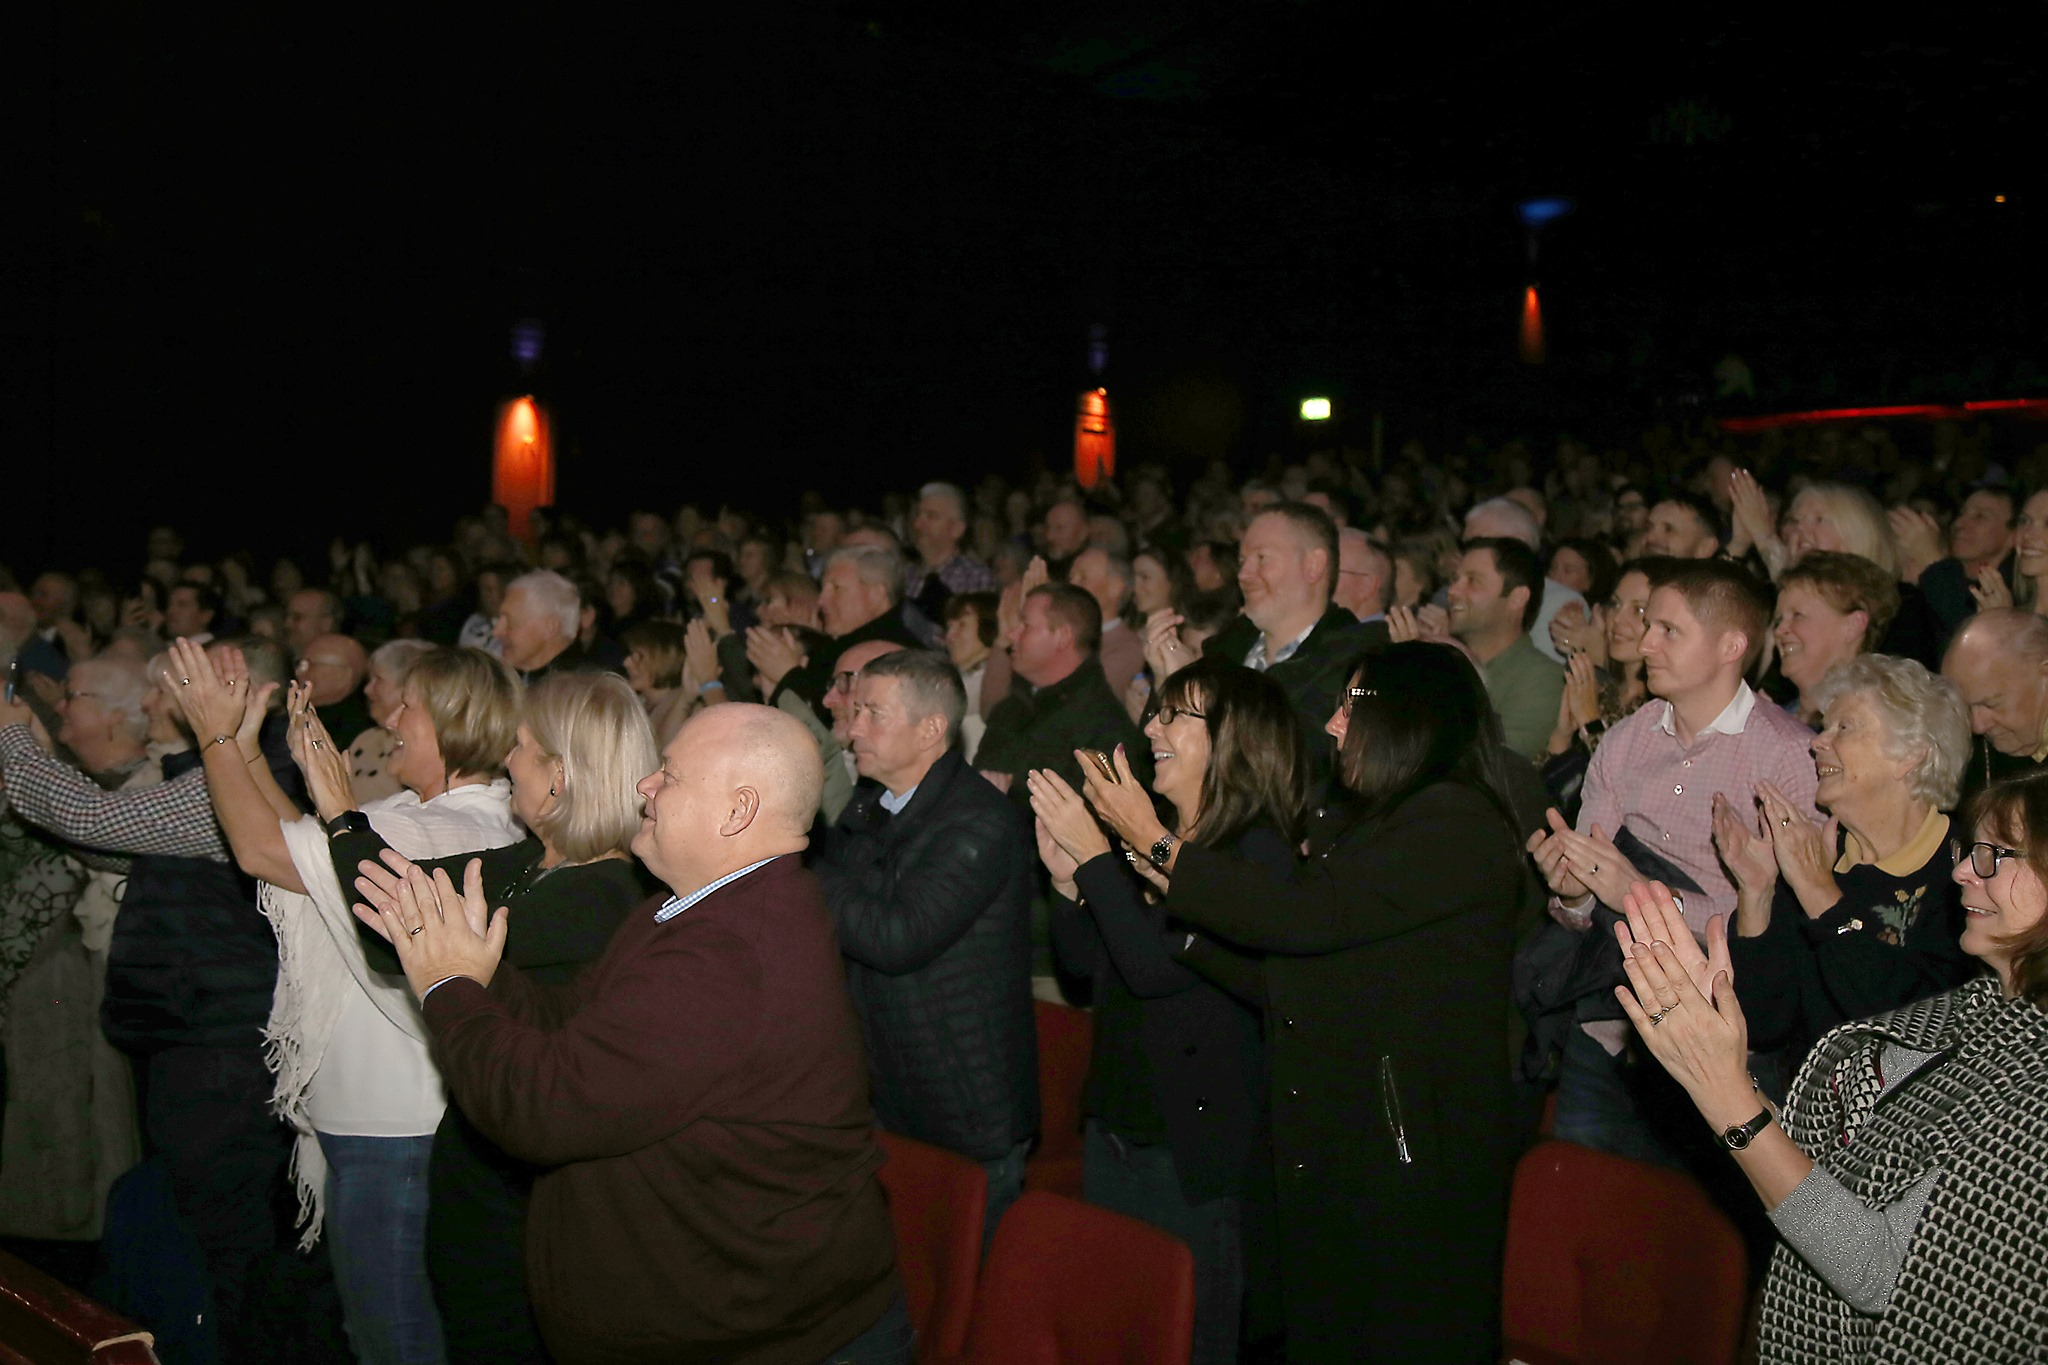 The show ended with a standing ovation for Parky at the Whitehall Theatre.